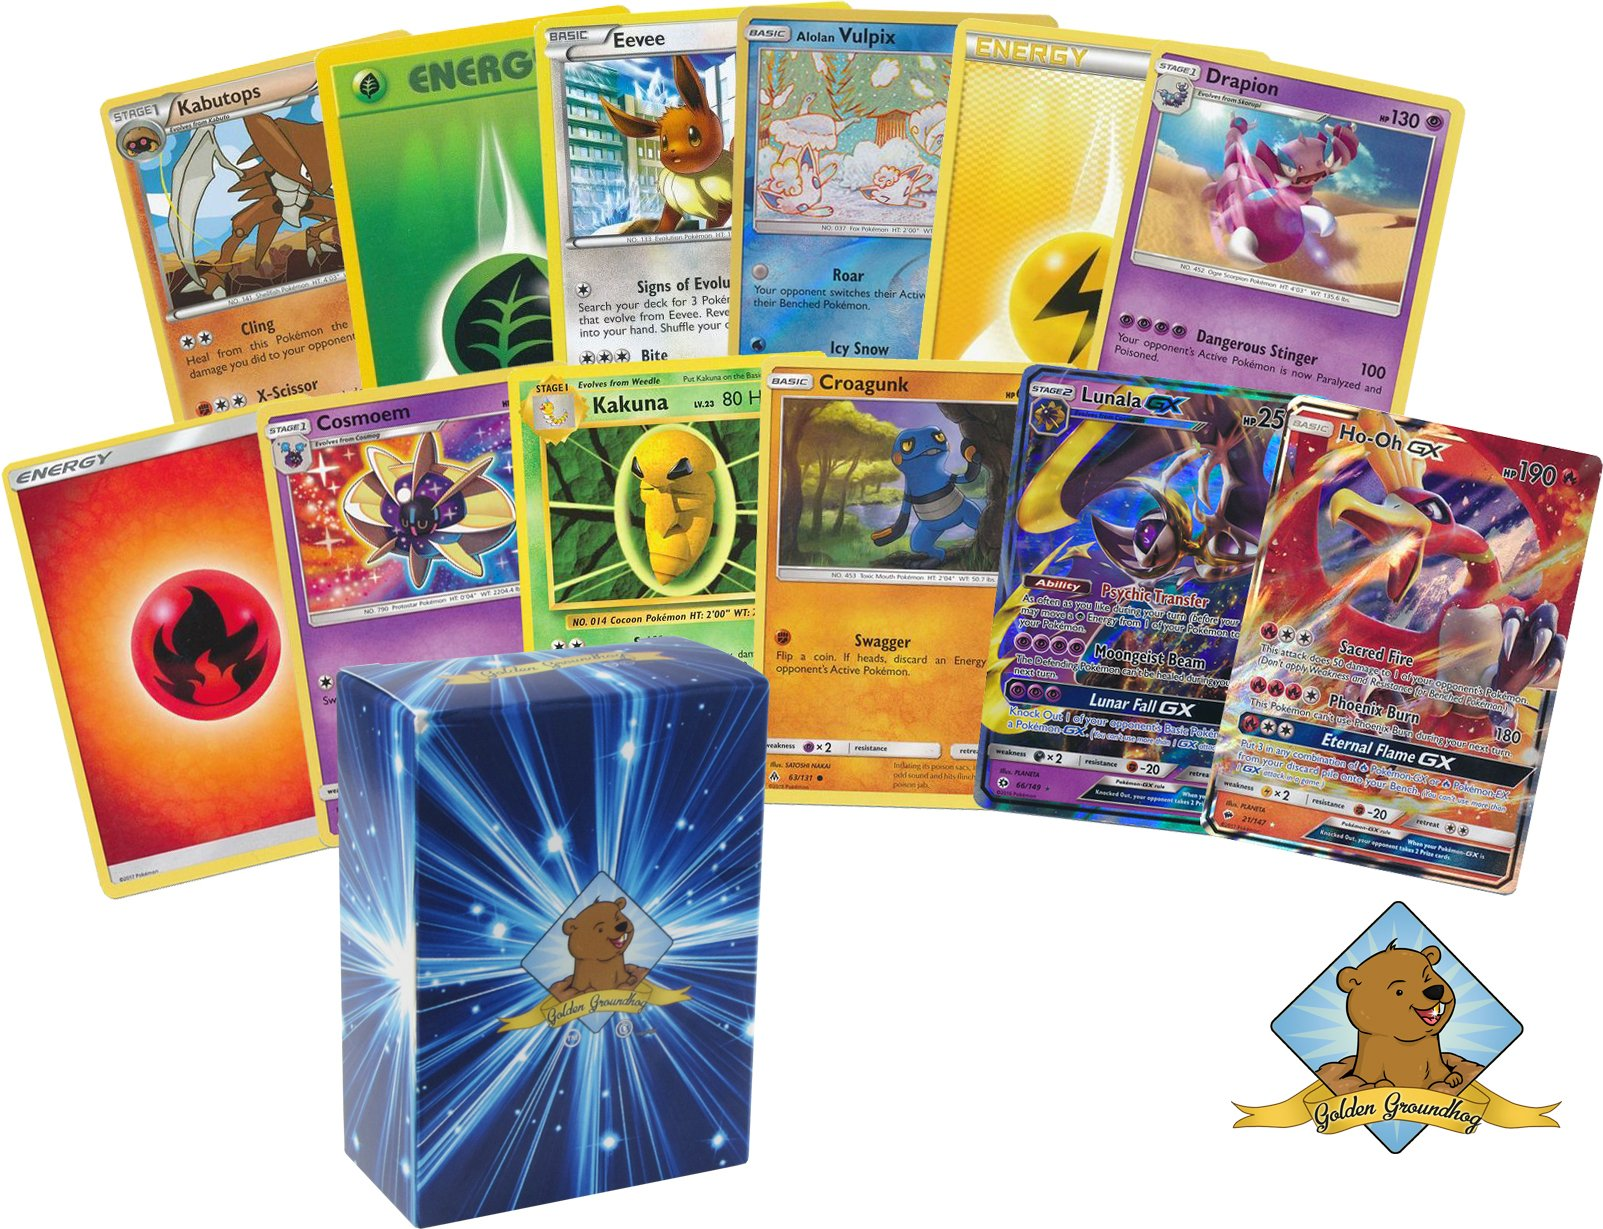 50 Pokemon Card Lot with Energy, Rares, Featuring 1 Legendary GX Cards No Duplication! Includes Golden Groundhog Box!